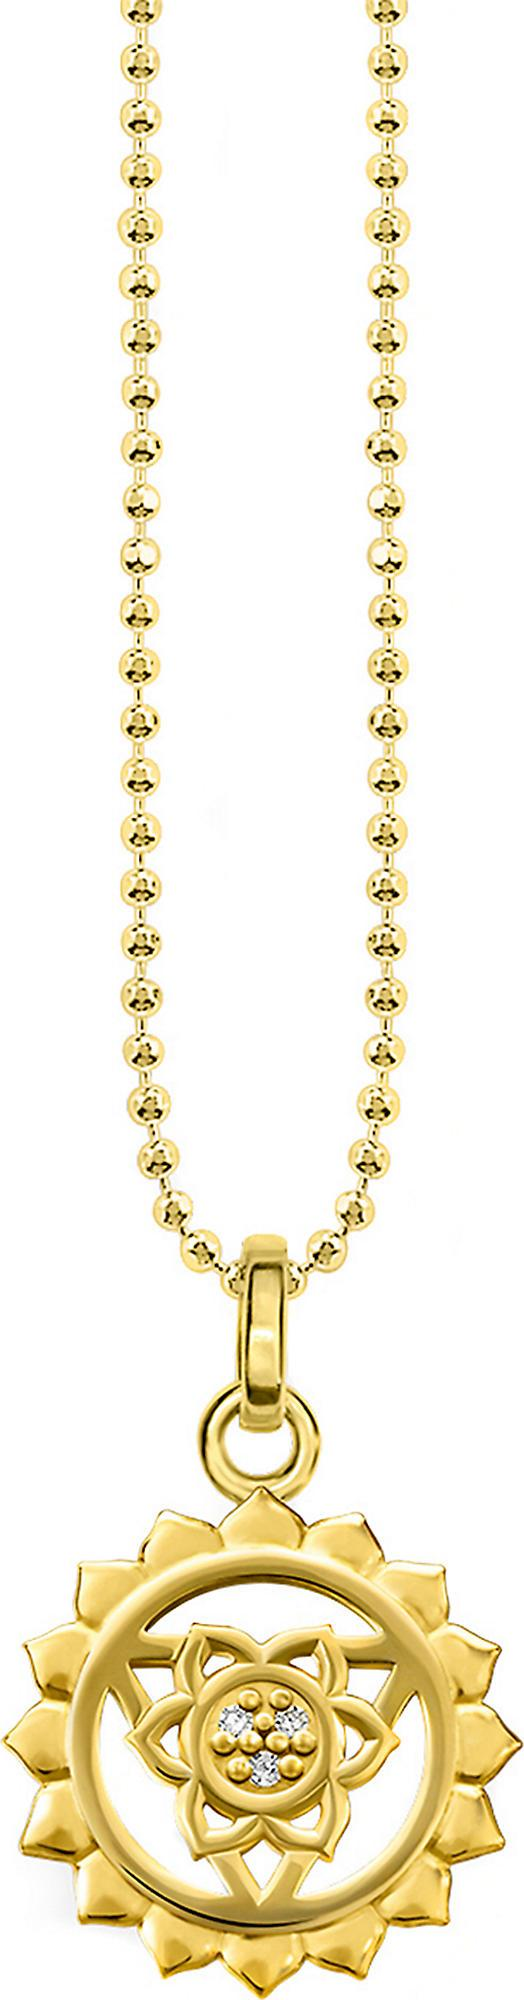 Thomas Sabo Viśuddha 18ct Gold-plated Sterling Silver And Crystal Necklace in Gold Yellow (Metallic)